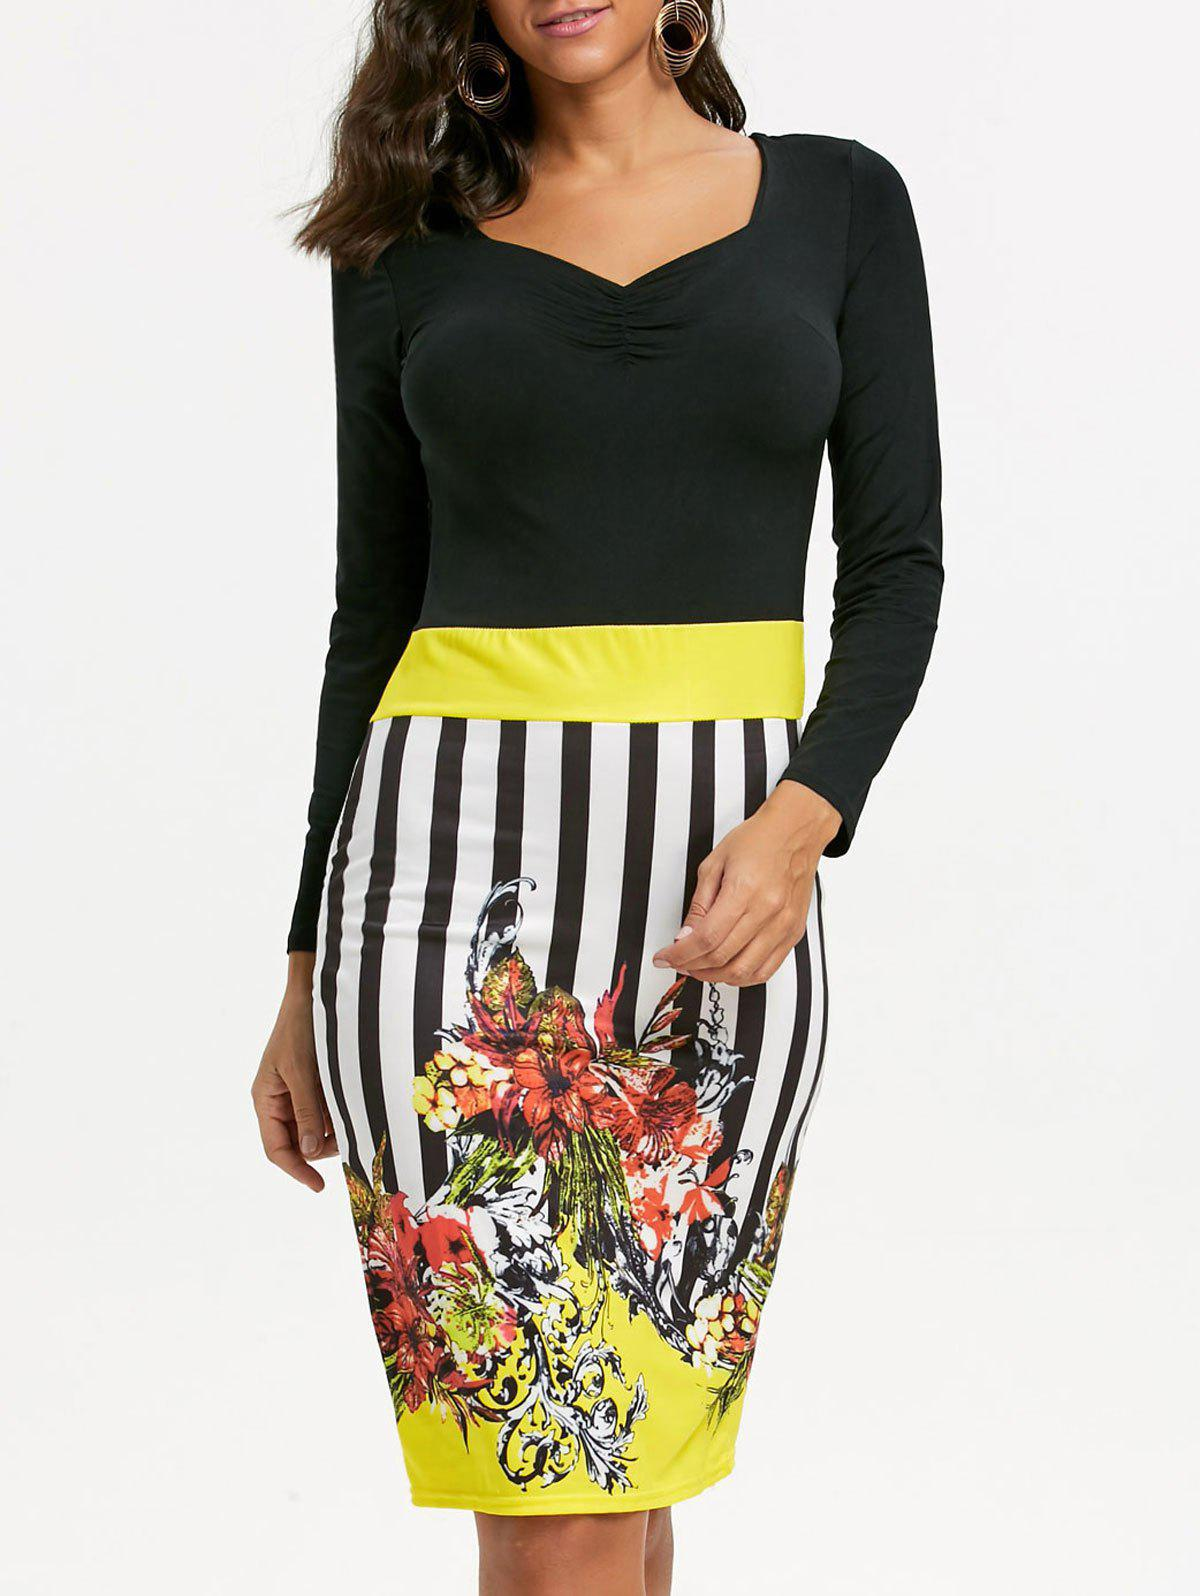 Stripe Floral Print Bodycon Dress - Jaune M